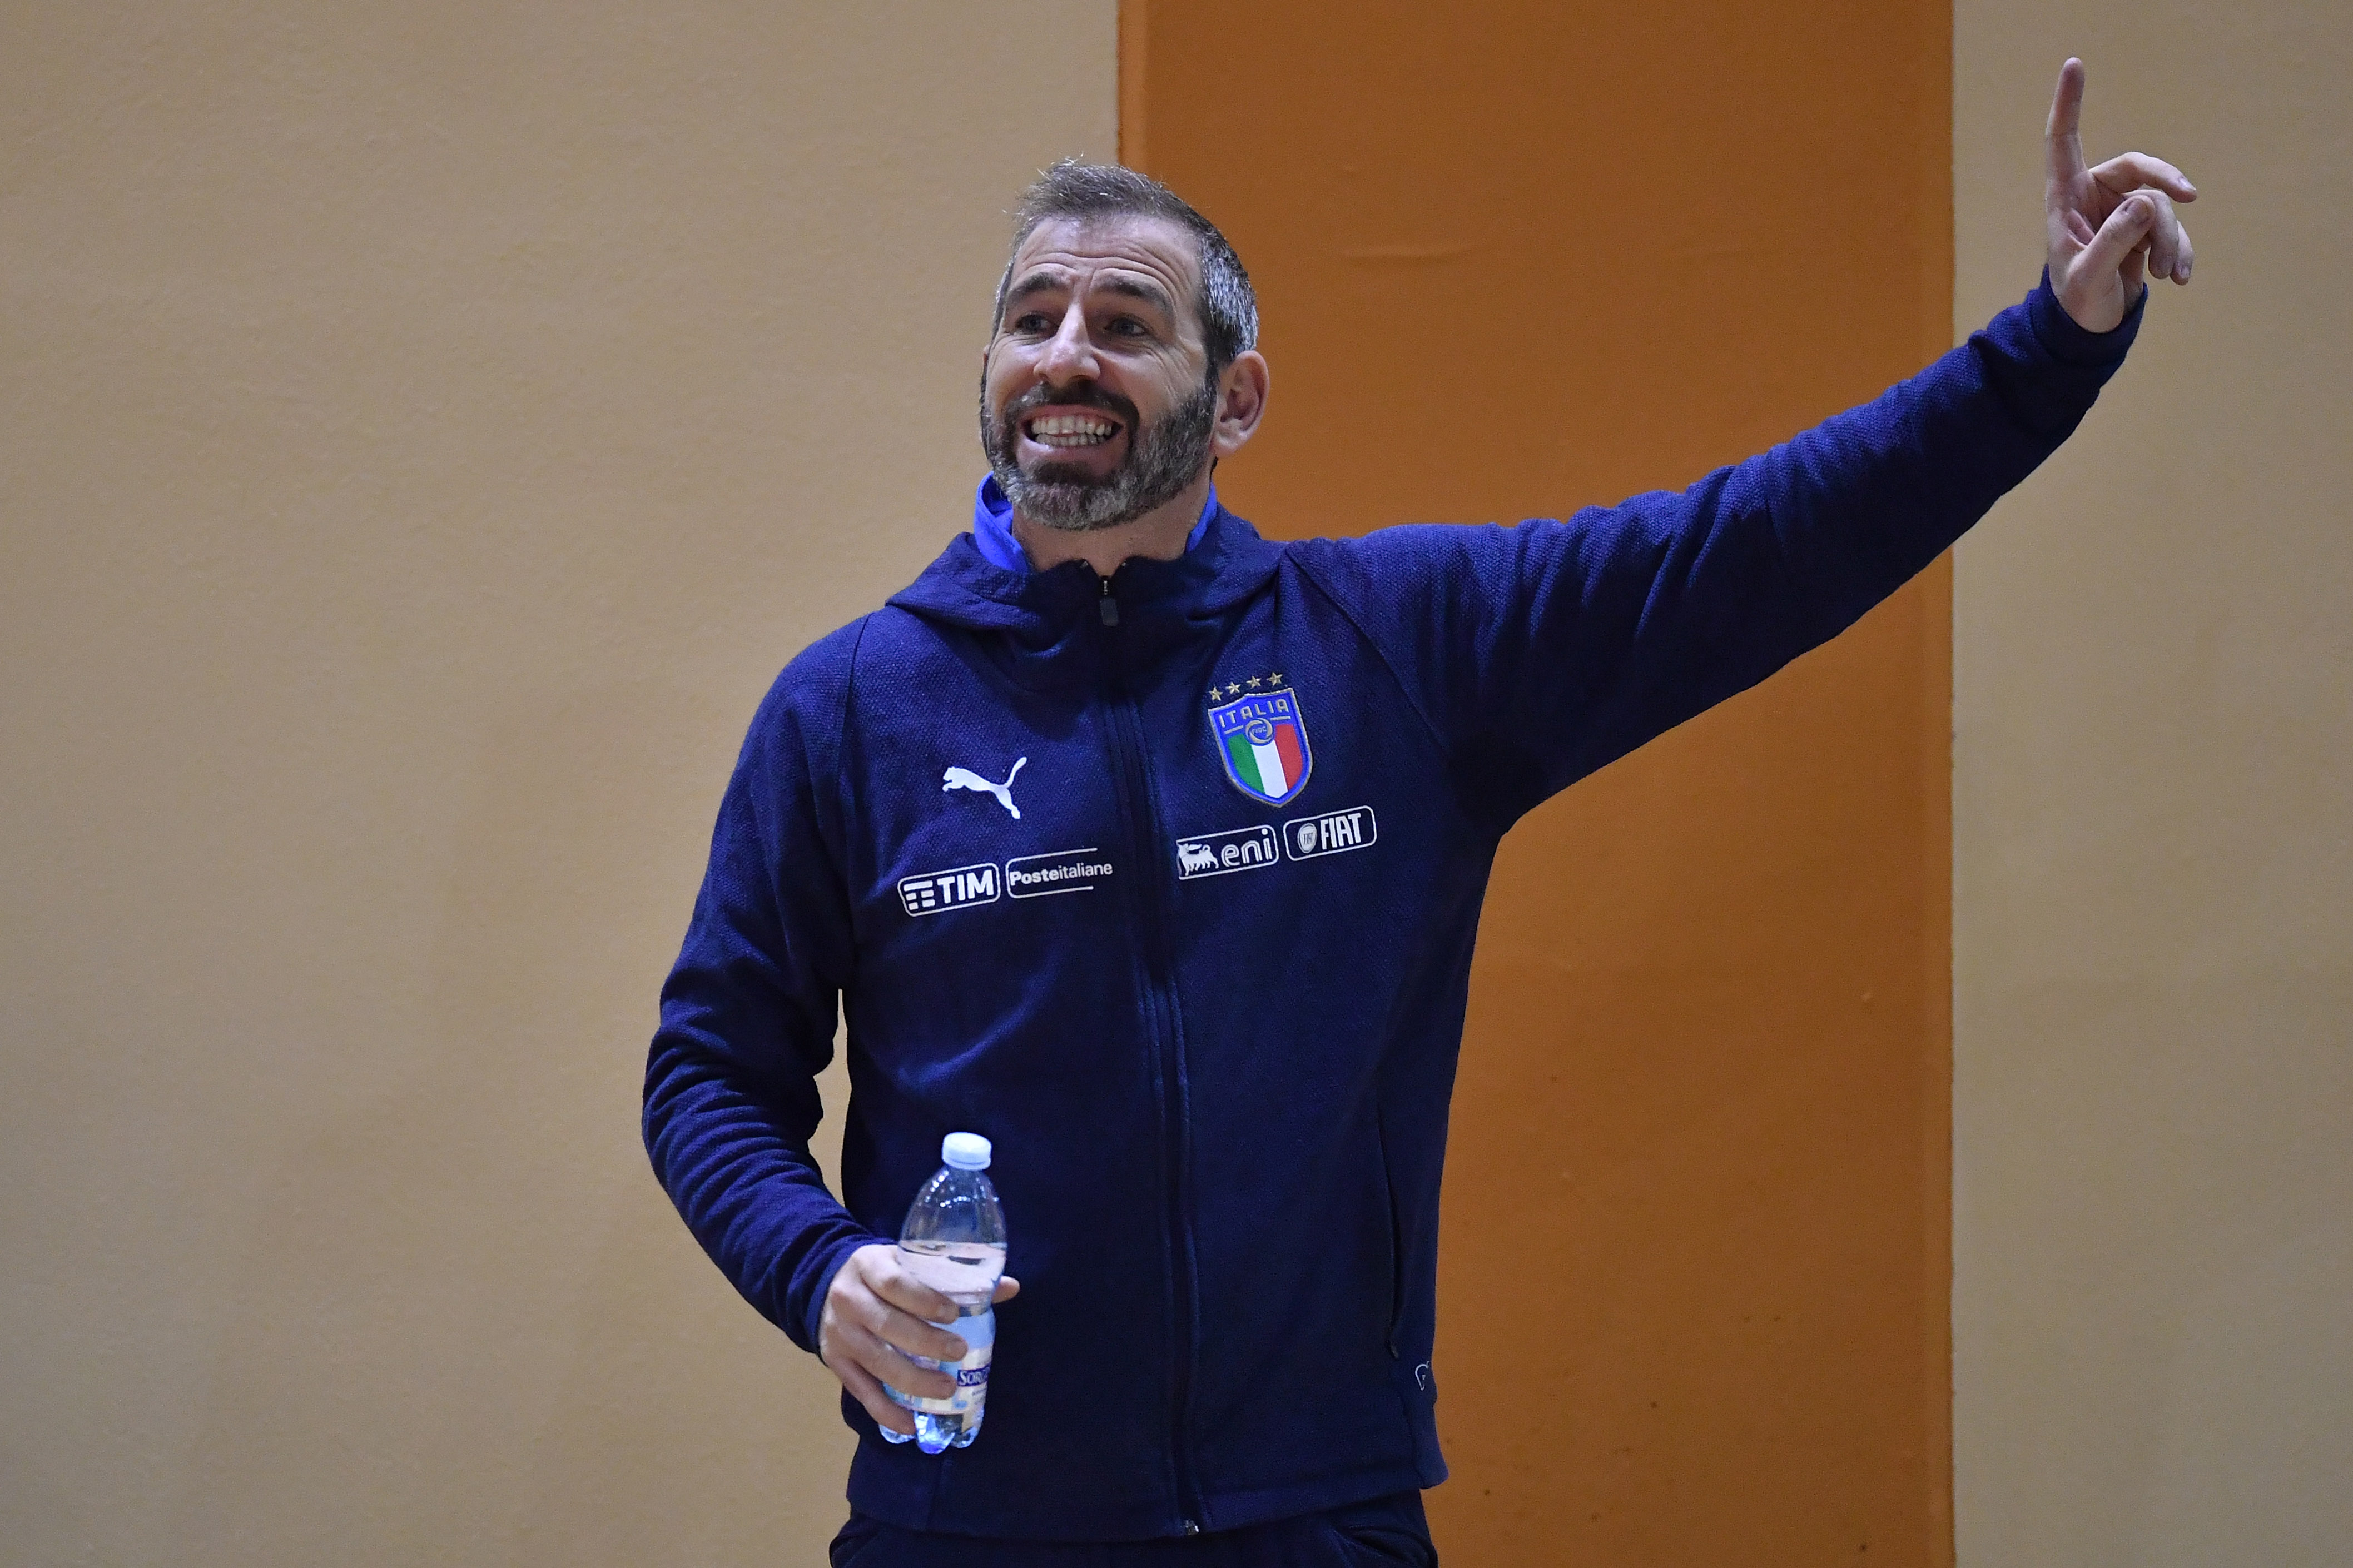 NOVARA, ITALY - JANUARY 31:  Italy head coach Alessio Musti looks on during the Futsal Friendly Match between Italy v Lecco at Novarello Training Center on January 31, 2019 in Novara, Italy.  (Photo by Valerio Pennicino/Getty Images)